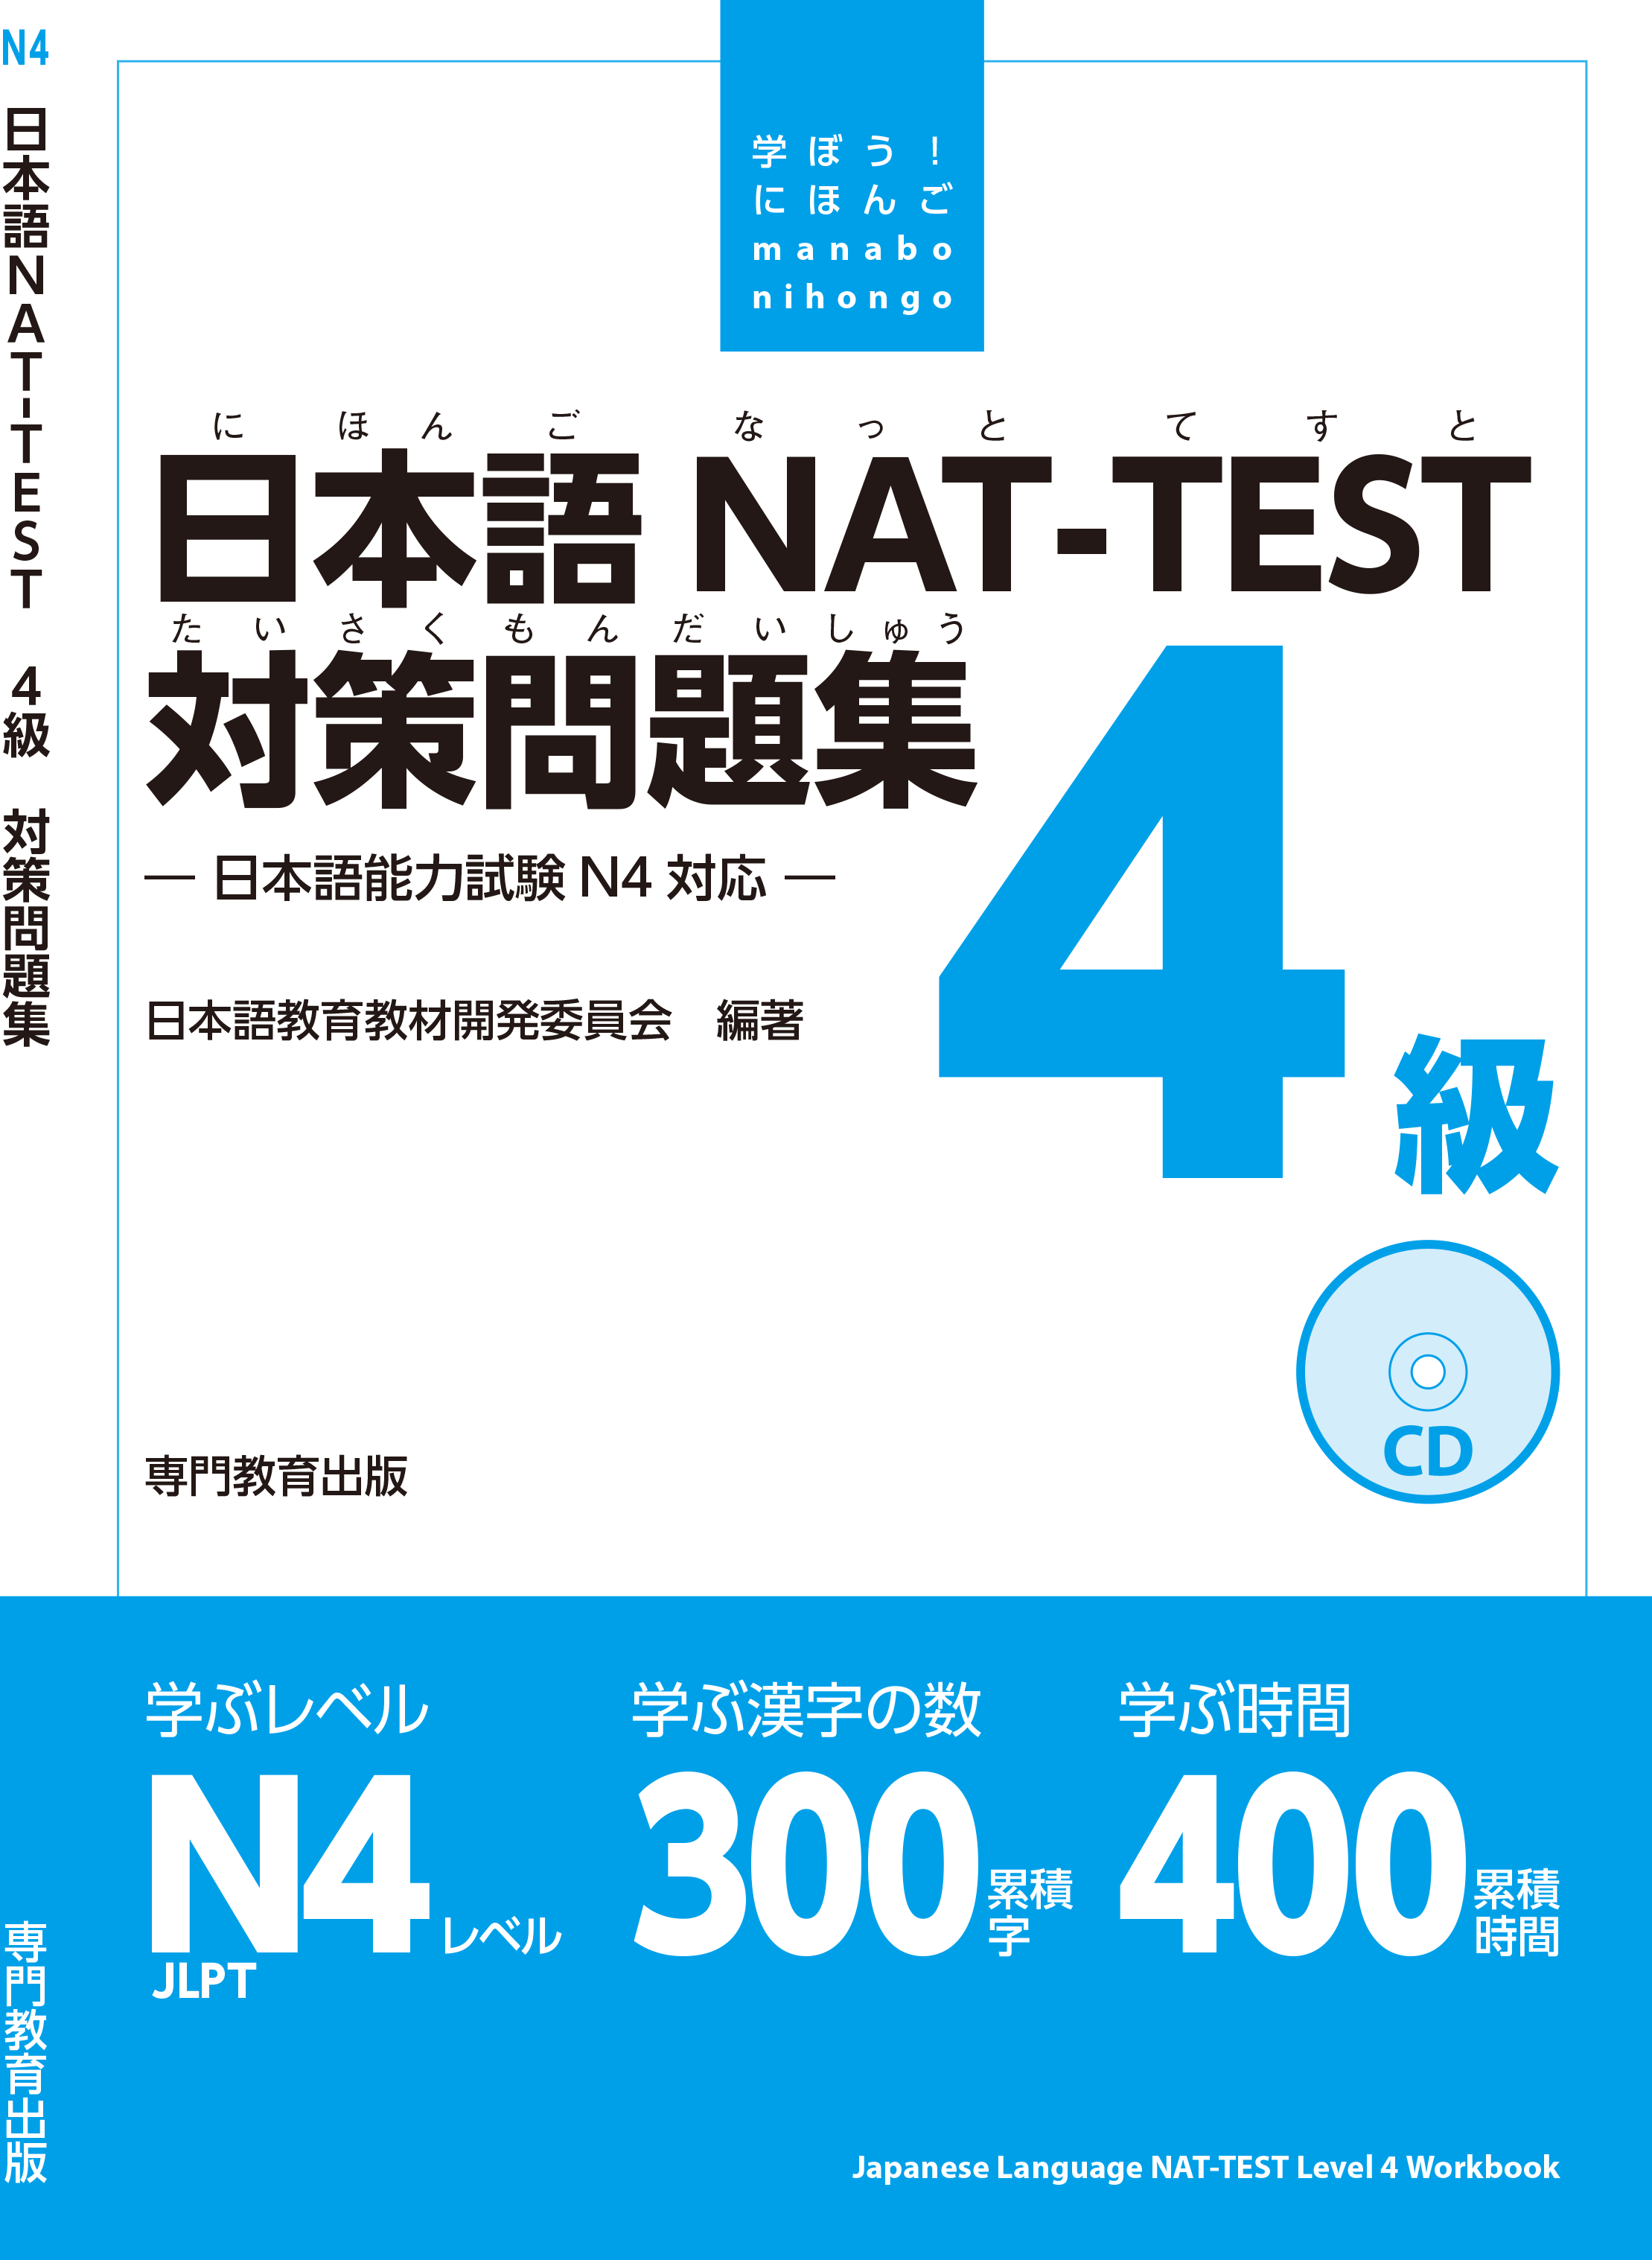 Chitwan Test Center for Japanese Language NAT-TEST